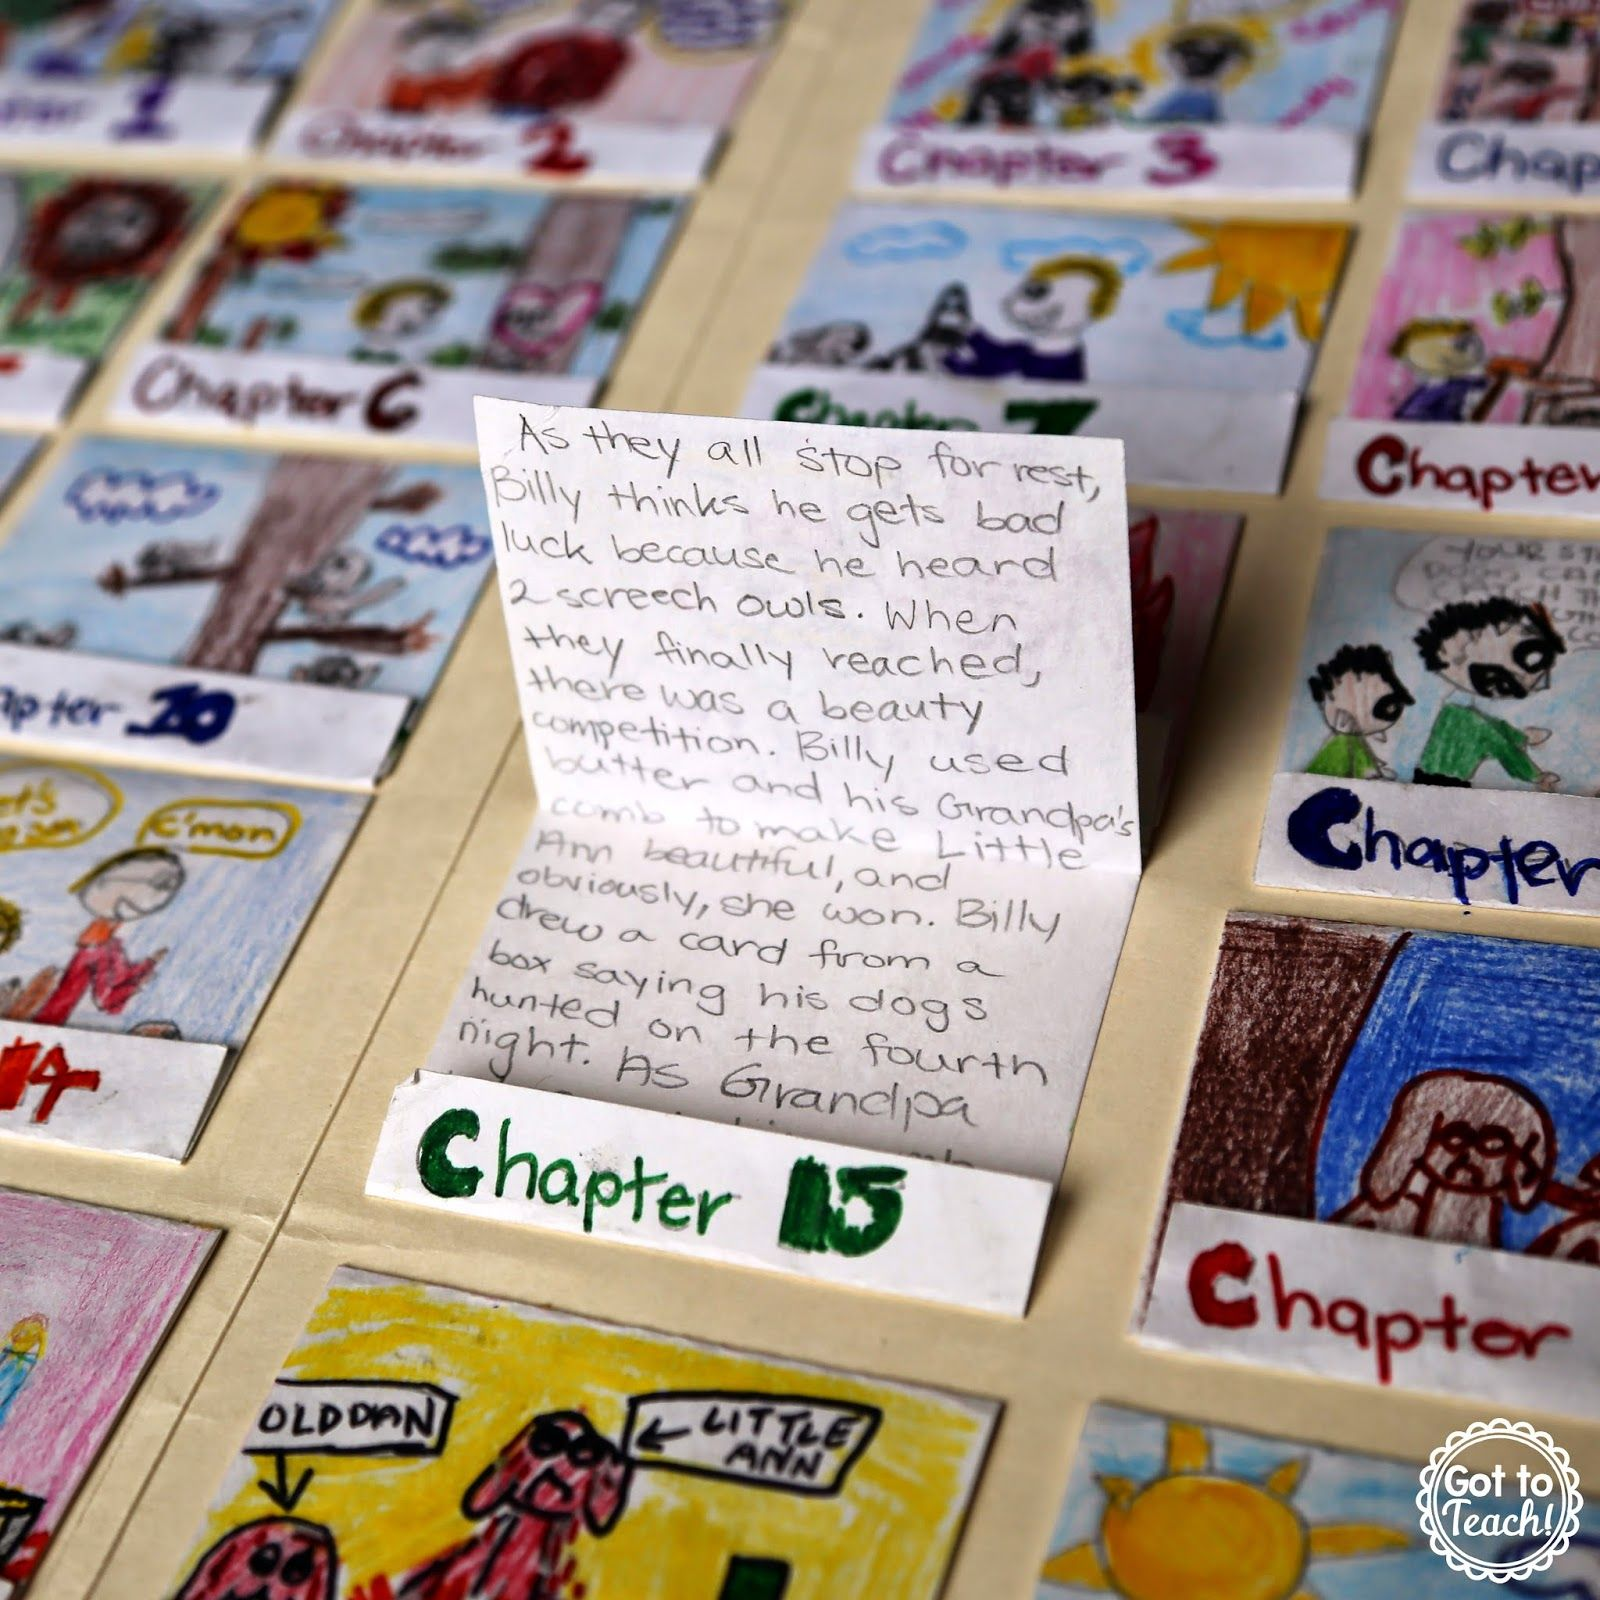 Matchbook chapter summaries novels students and literacy matchbook chapter summaries for novel studies what a creative way to work on summarising with chapter books fandeluxe Gallery